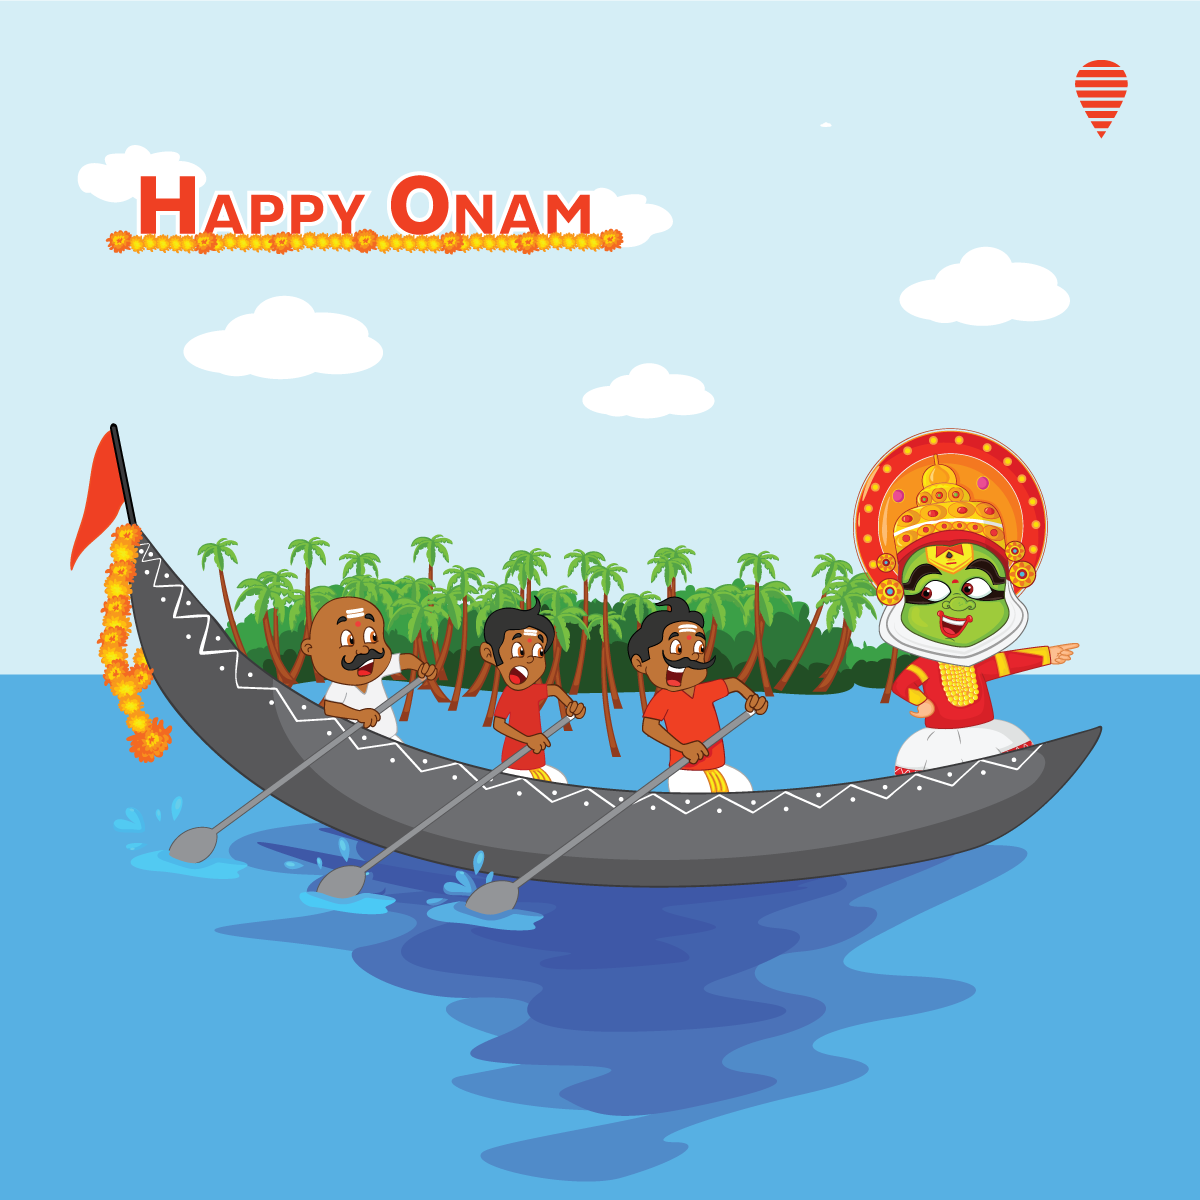 9:47 PM - 13 Sep 2016 - Onam Boat PNG